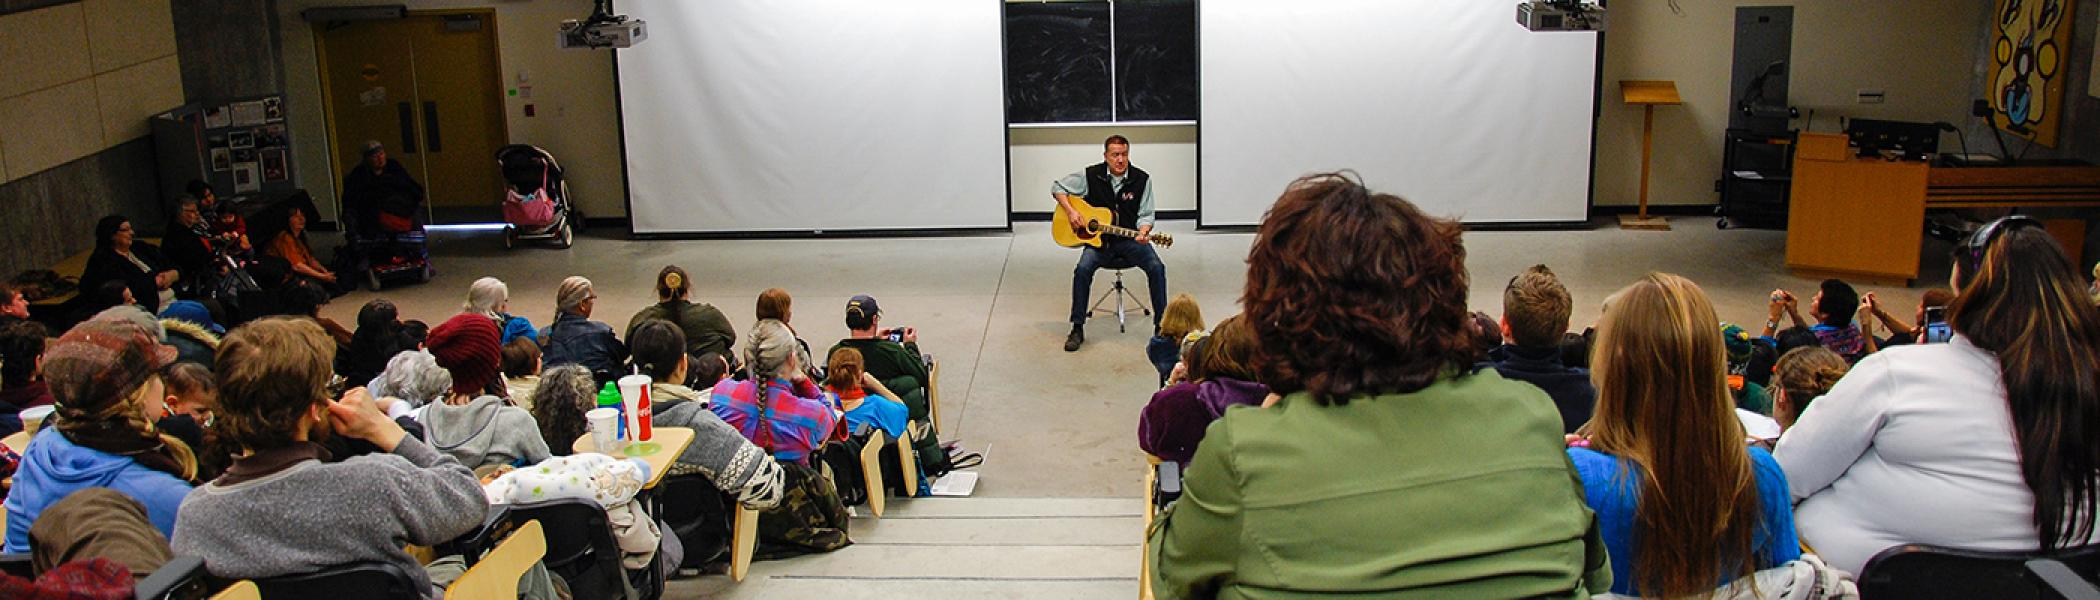 Ton Jackson sitting on a chair in a lecture hall playing guitar to an full audience